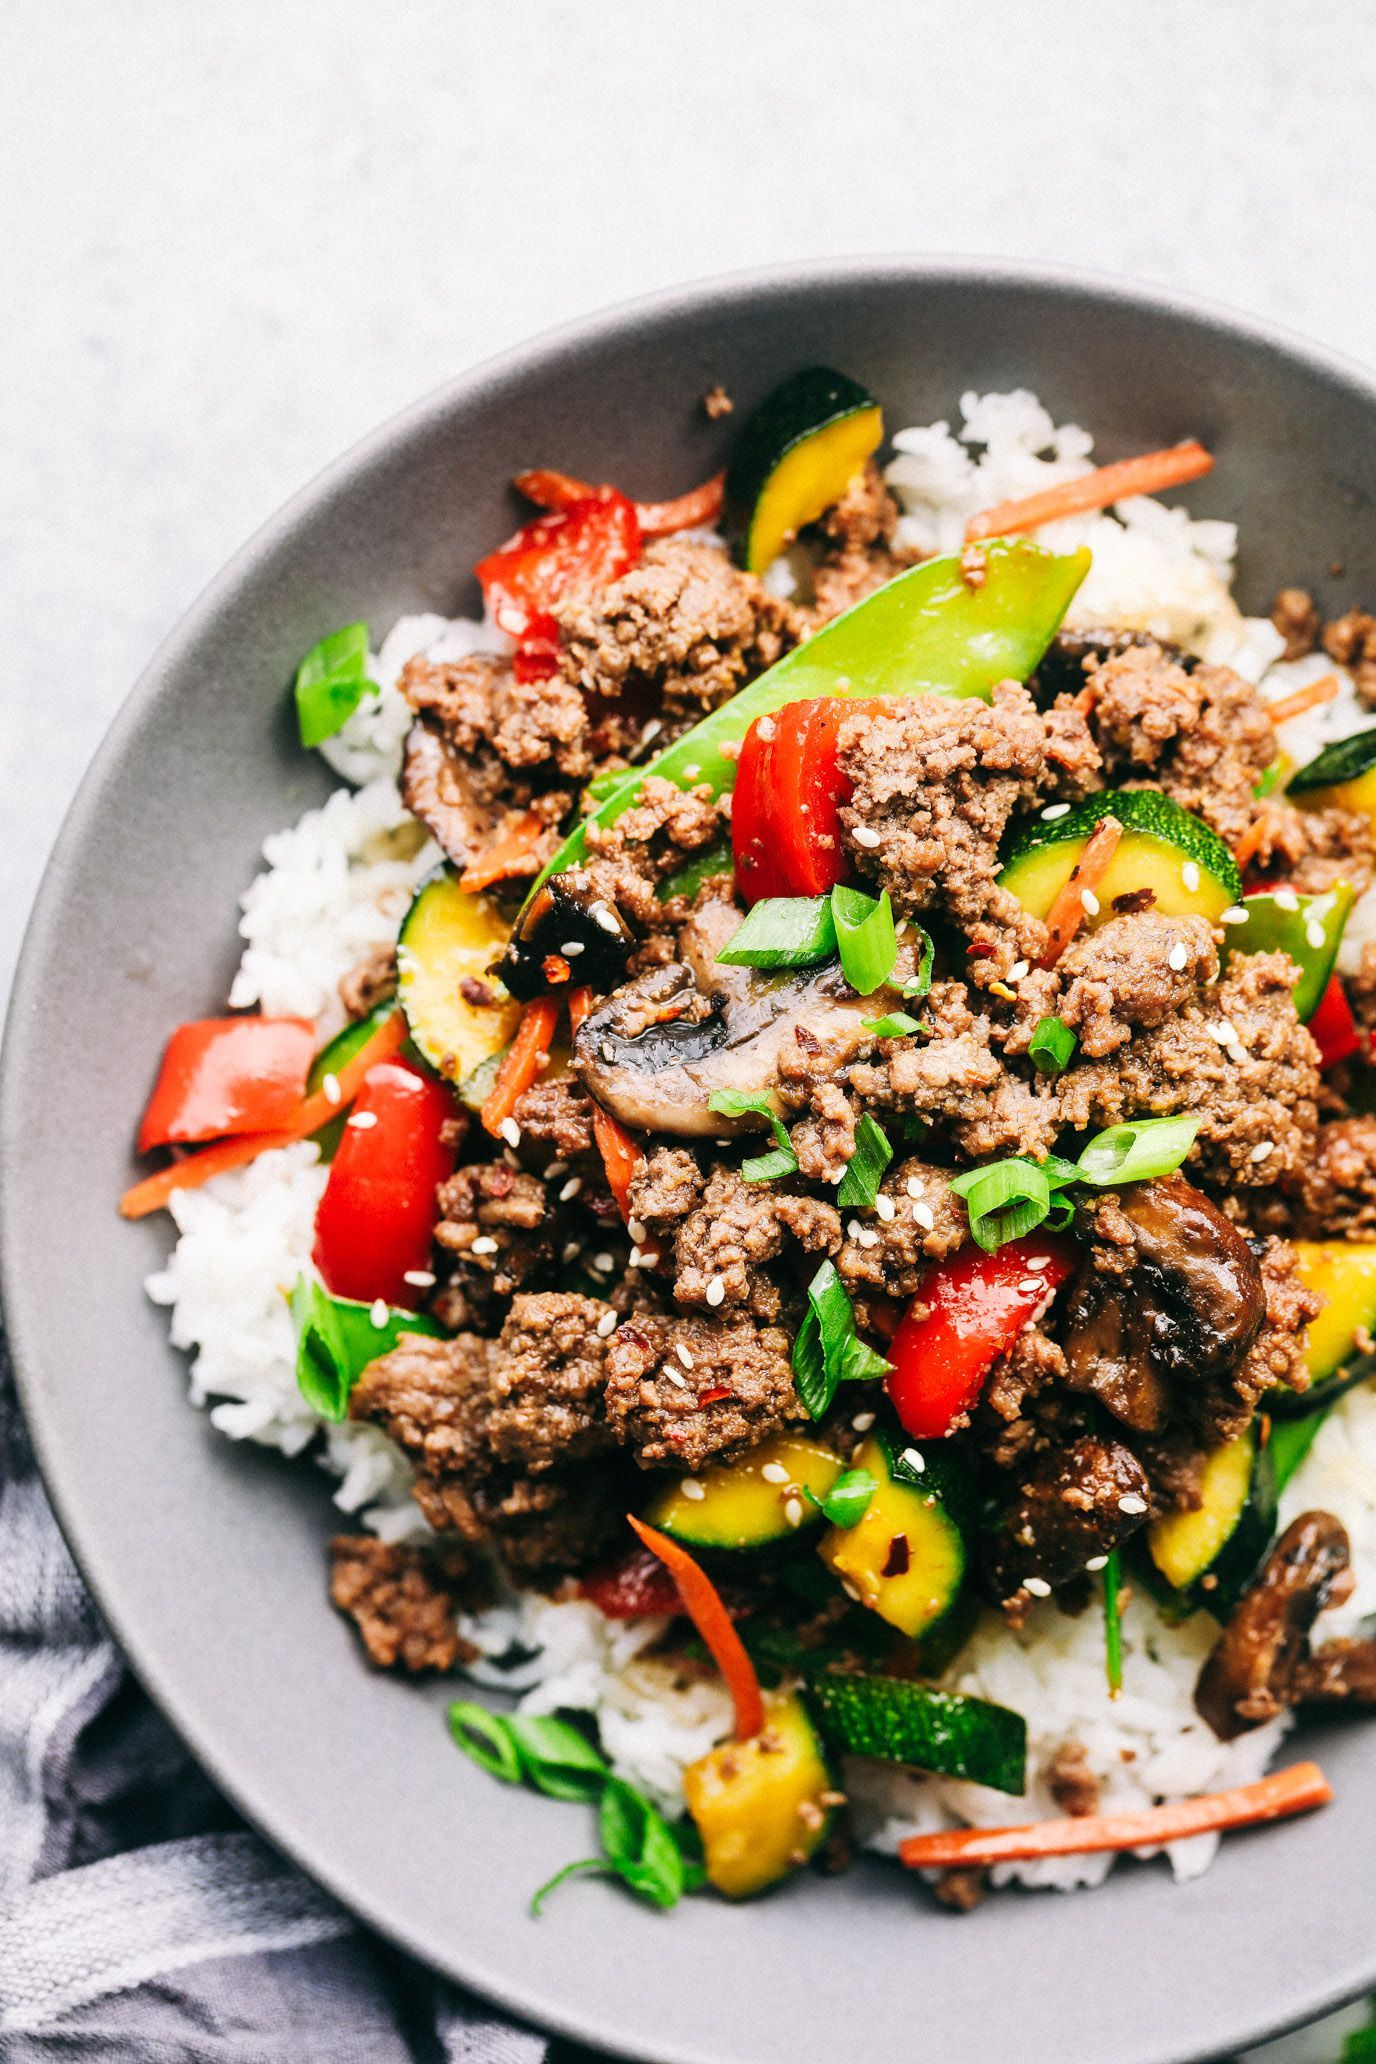 70 Easy Ground Beef Recipes That'll Make Weeknight Meals a ...